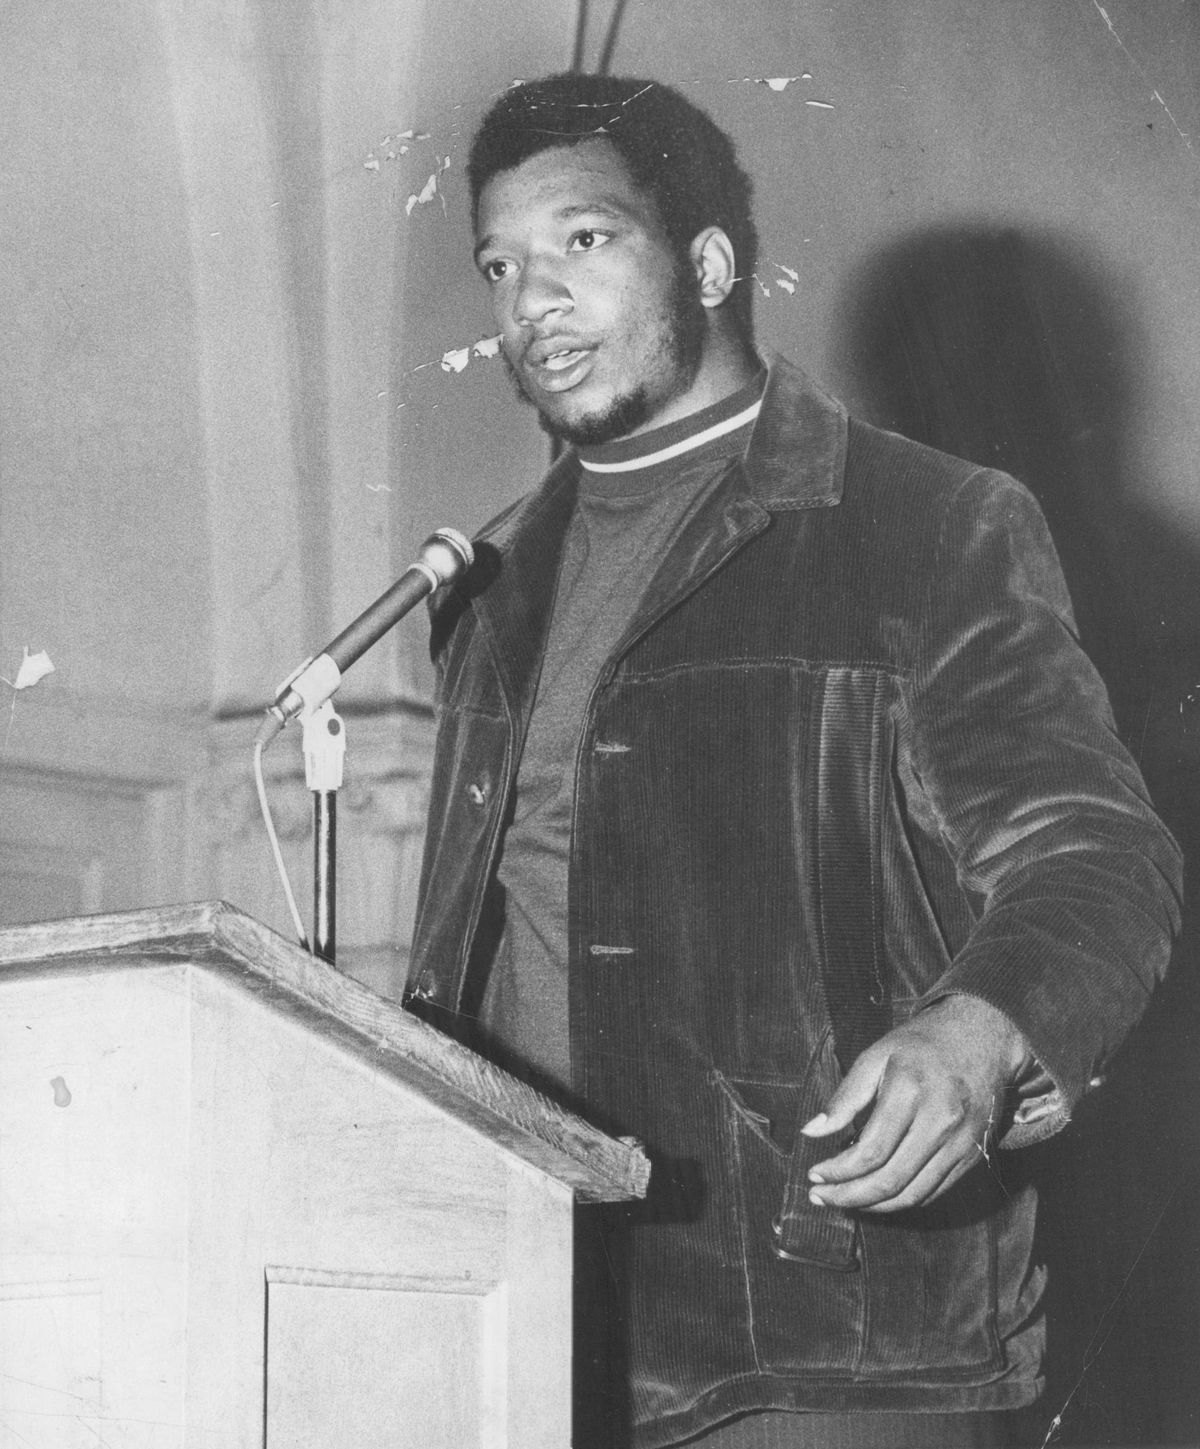 Fred Hampton speaking at a church in an undated photo.